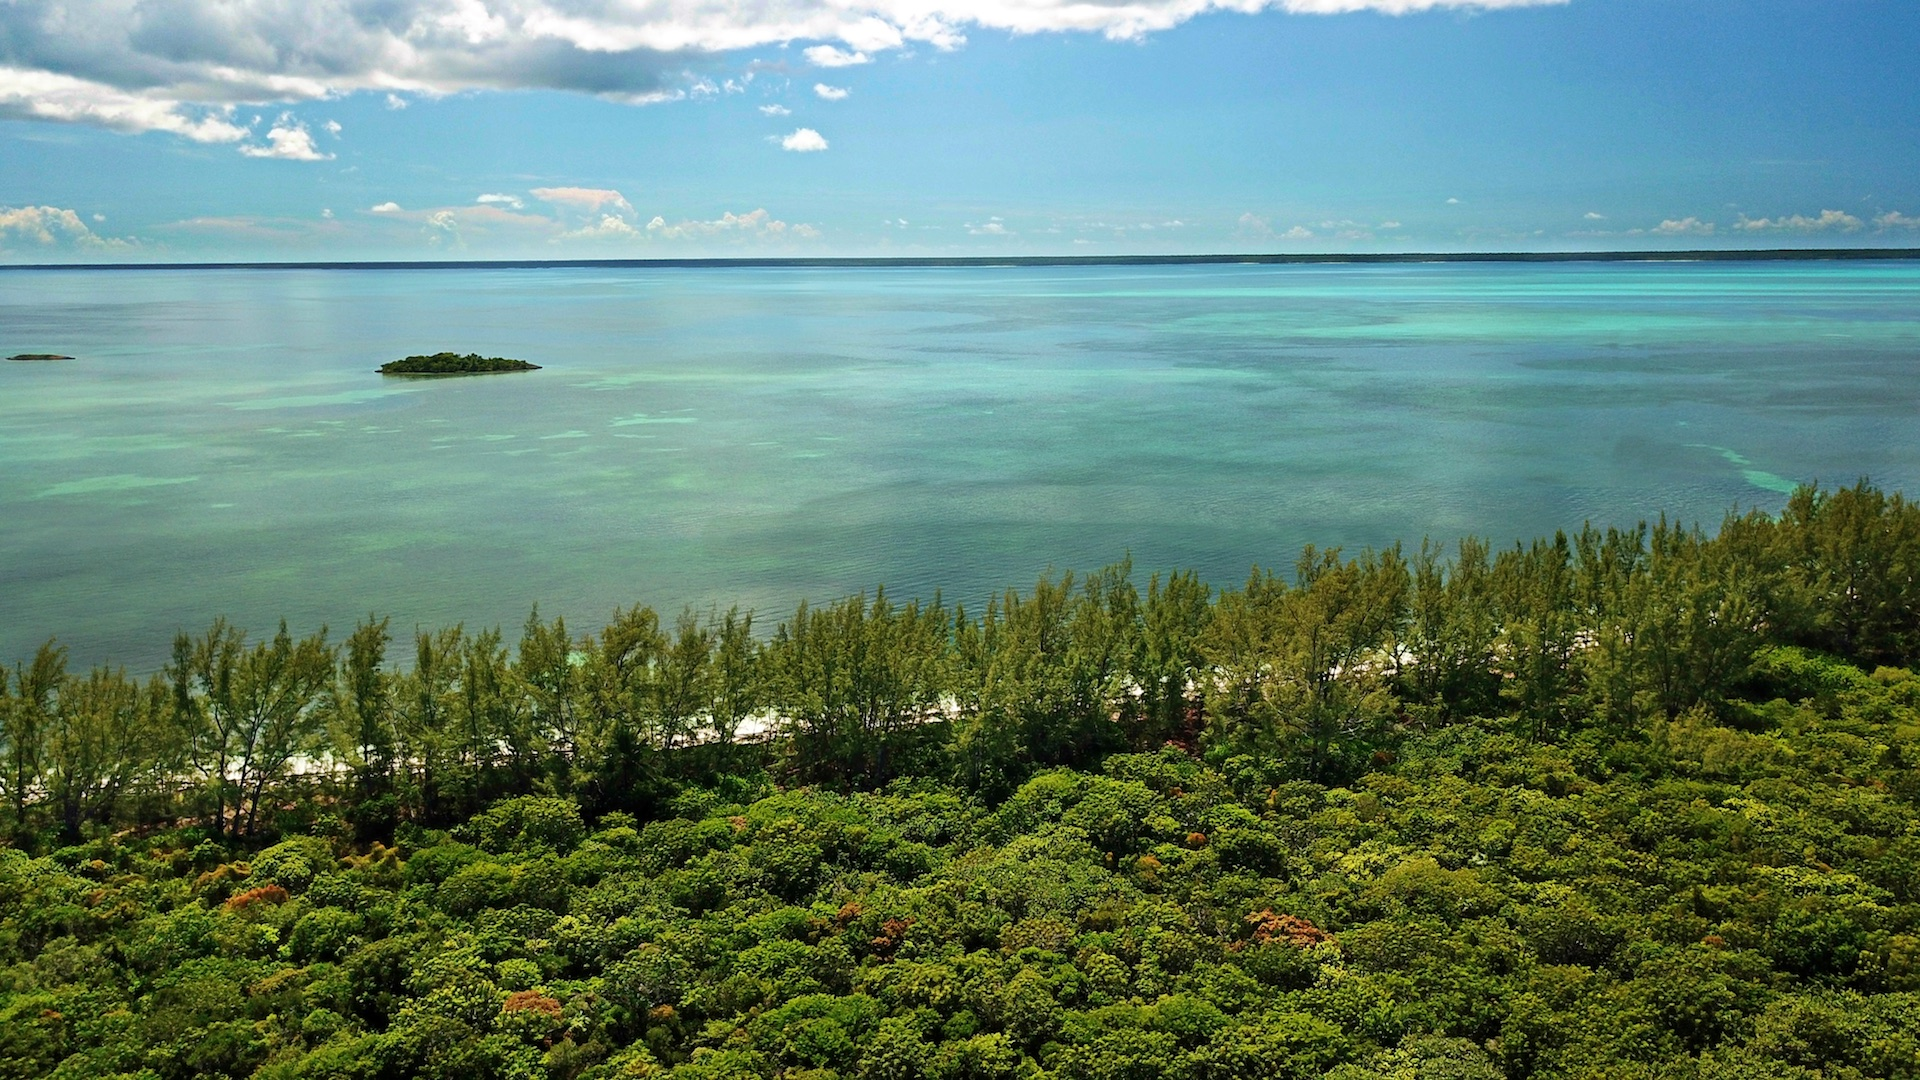 Sea to sea beachfront acreage on Munjack Cay for sale